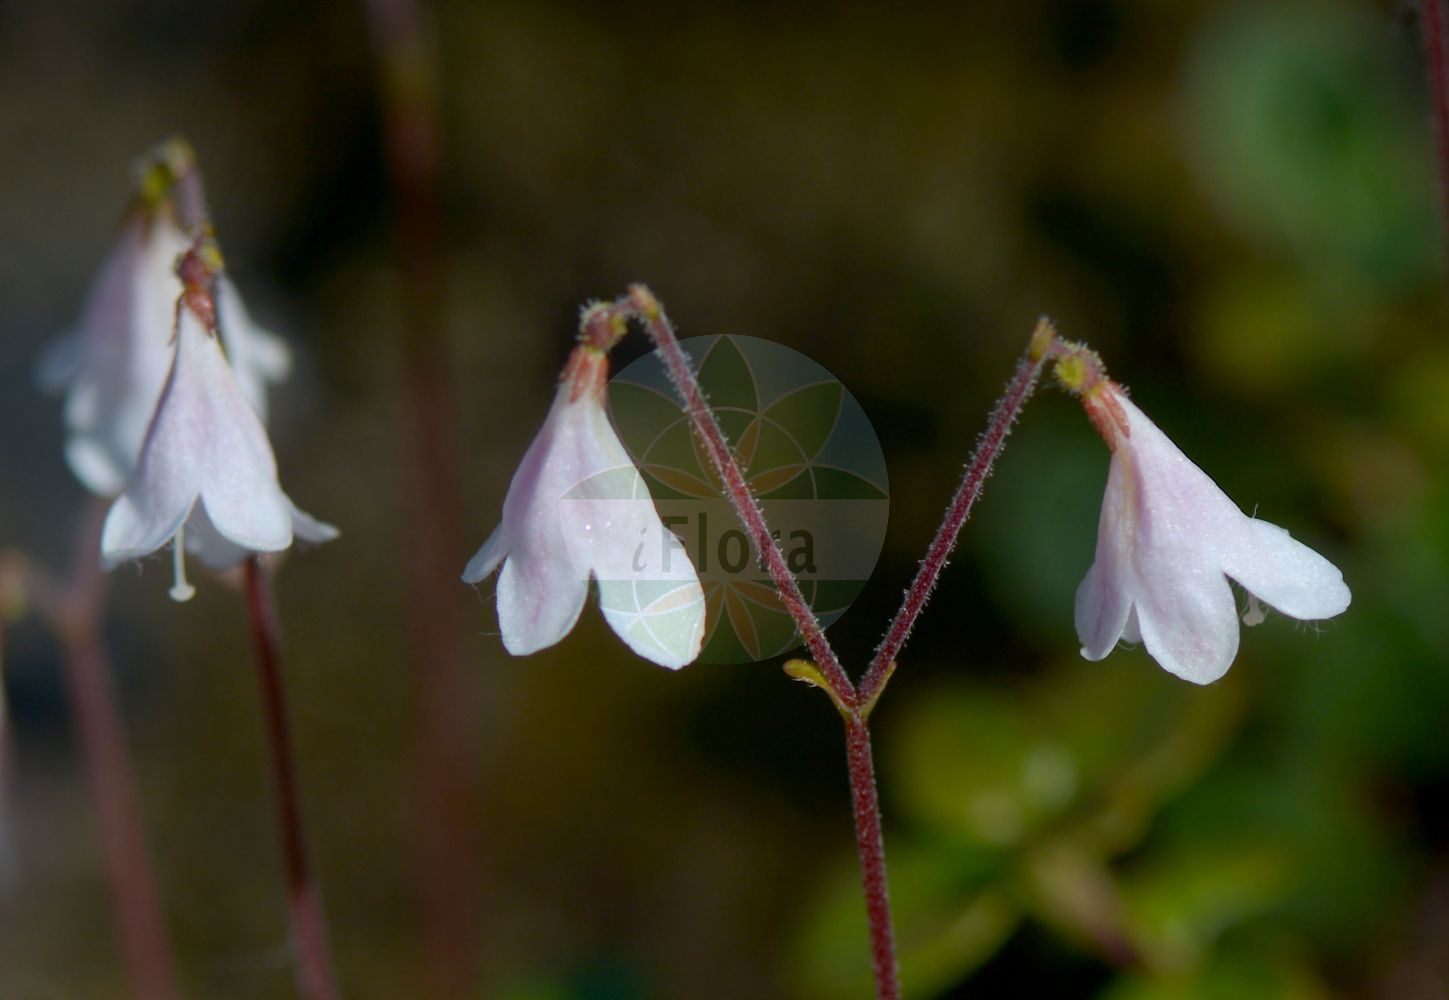 Foto von Linnaea borealis (Moosgloeckchen - Twinflower). Das Bild zeigt Bluete. Das Foto wurde in Goeteborg, Schweden aufgenommen. ---- Photo of Linnaea borealis (Moosgloeckchen - Twinflower).The image is showing flower.The picture was taken in Gothenburg, Sweden.(Linnaea borealis,Moosgloeckchen,Twinflower,Erdgloeckchen,Linnaea,Moosgloeckchen,Twinflower,Caprifoliaceae,Geissblattgewaechse,Honeysuckle family,Bluete,flower)